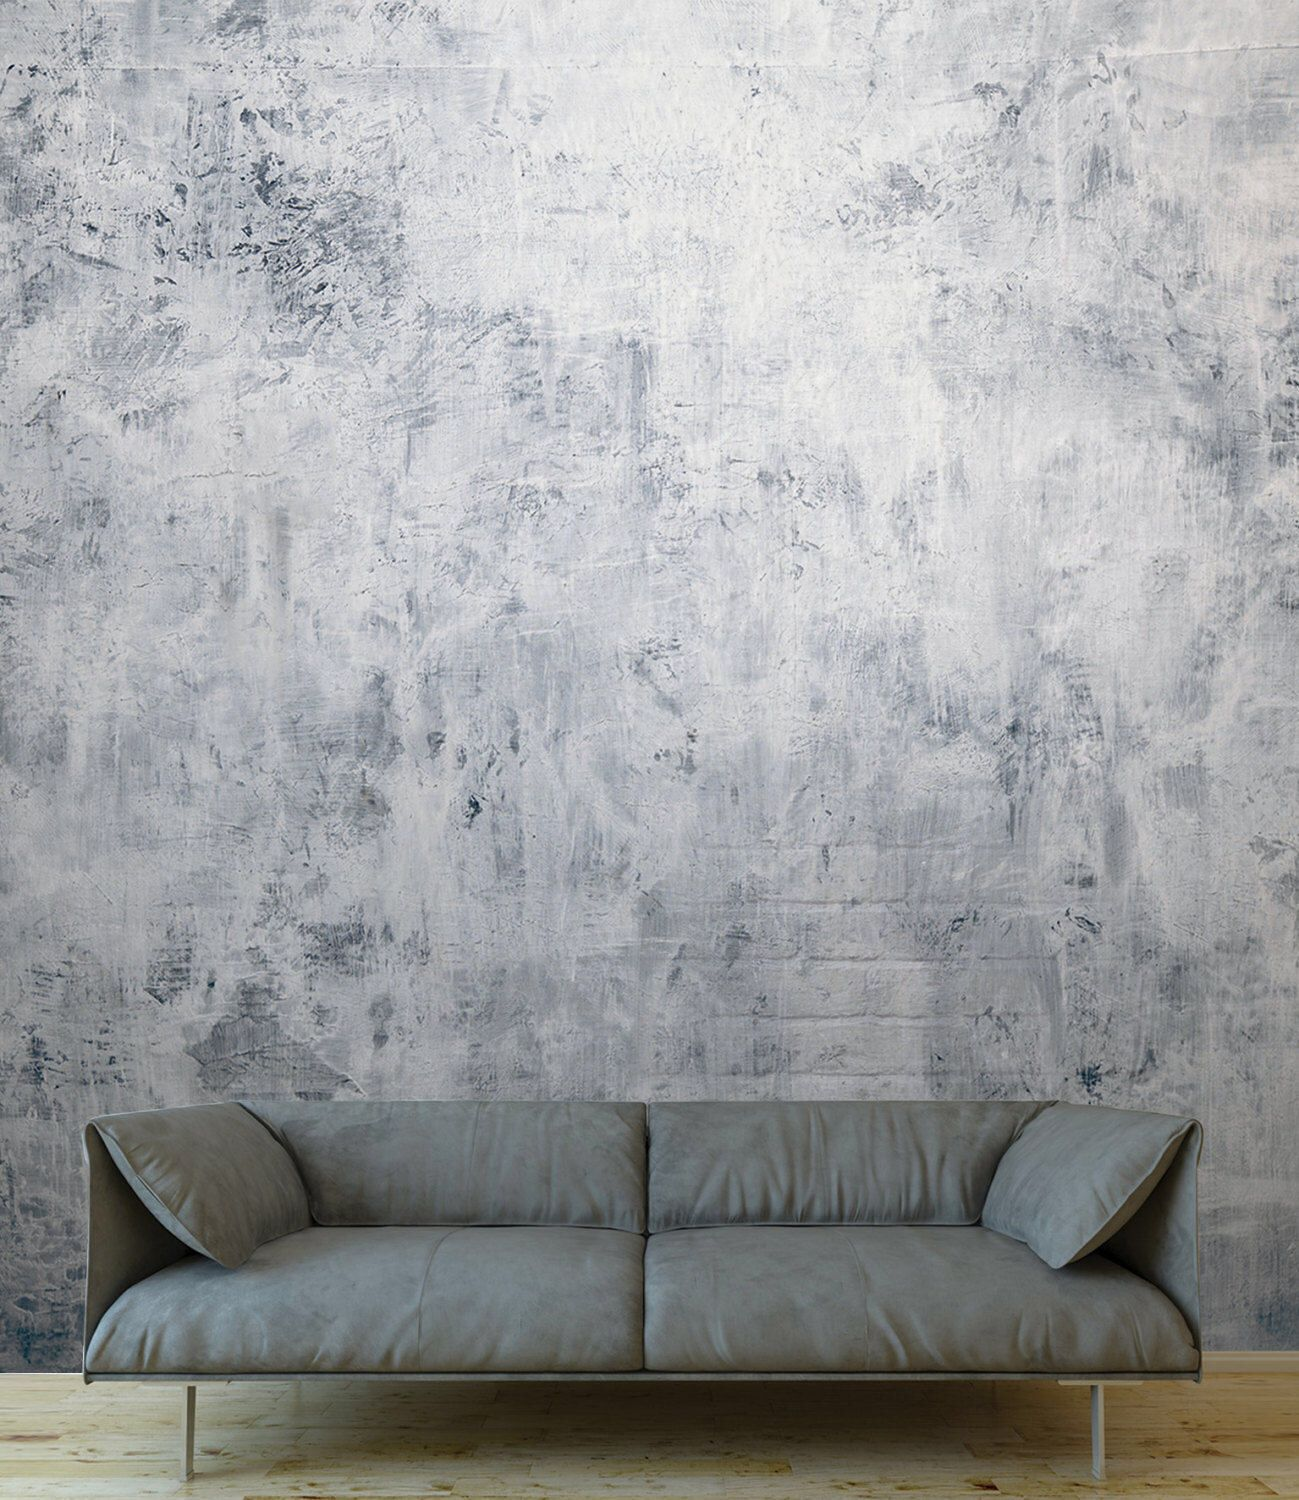 Blue Steel Concrete Wallpaper With Brick Effect Home And Office Wall Decor Natural Interiors Bailen In 2020 Office Wall Decor Office Wall Colors Brick Interior